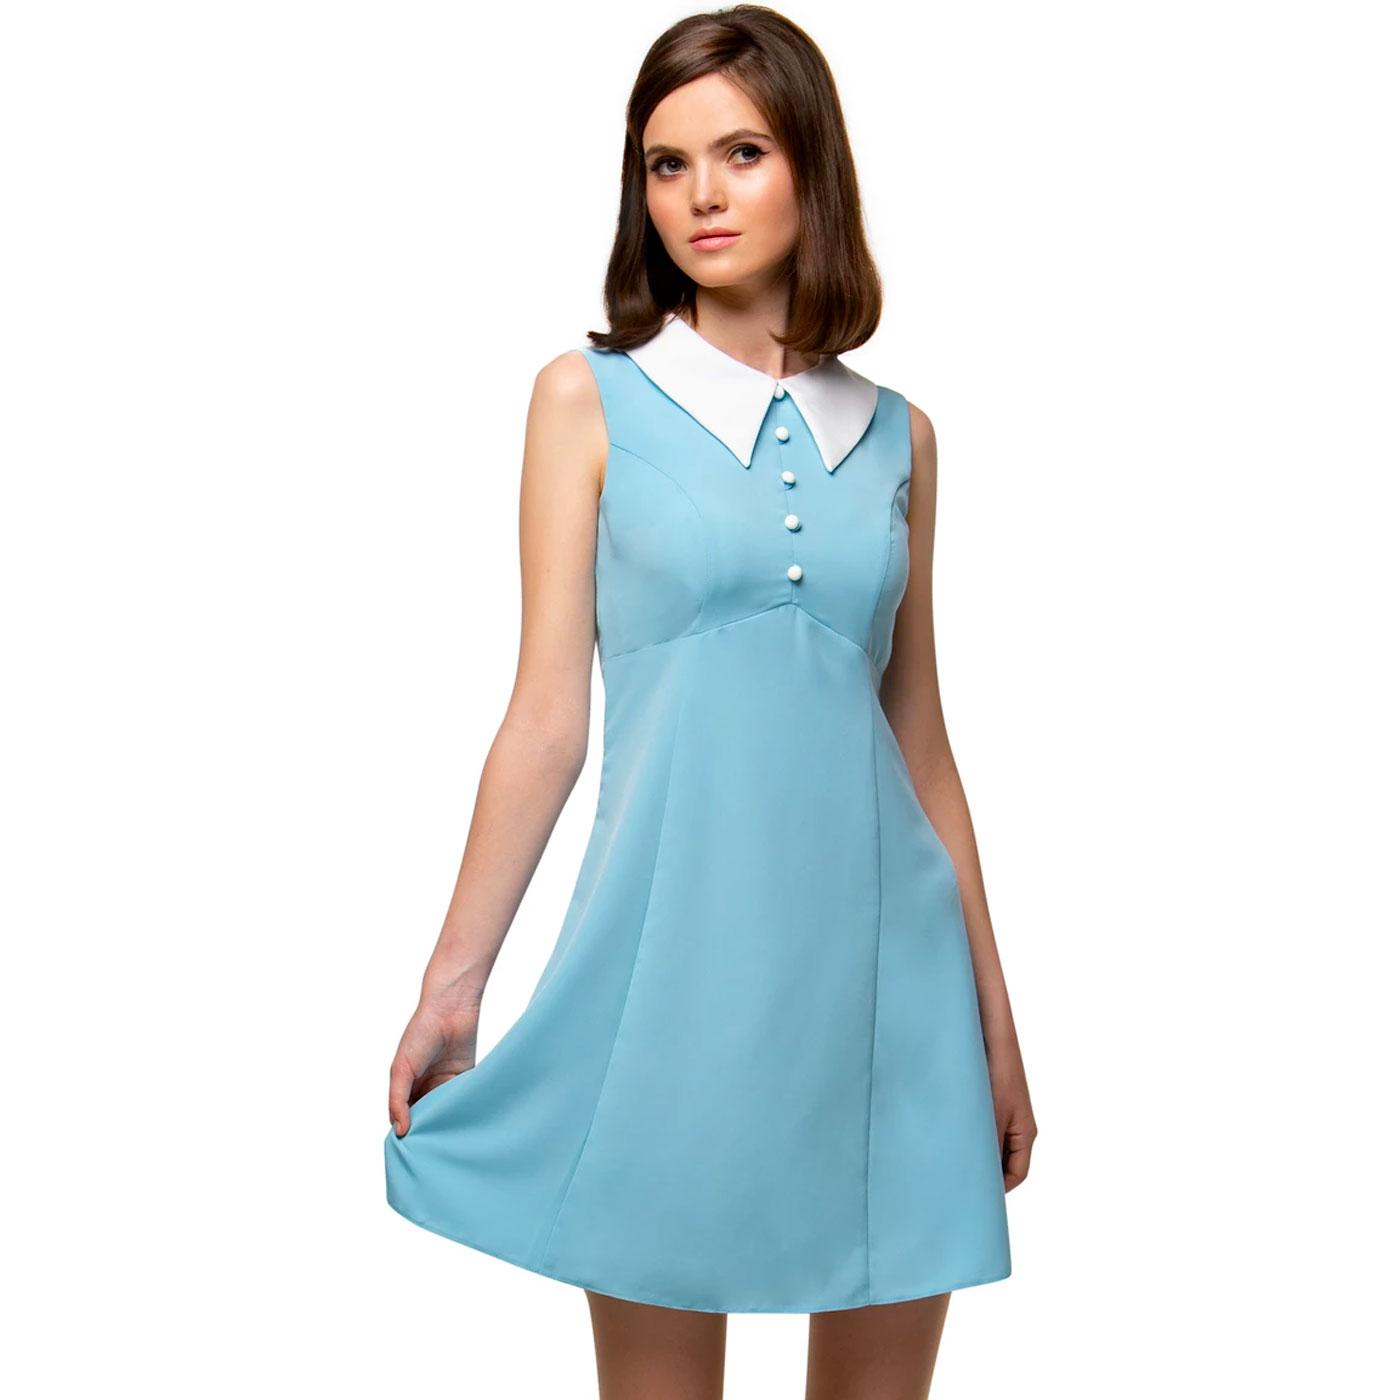 MARMALADE Retro 1960s Mod Big Collar Dress (Blue)